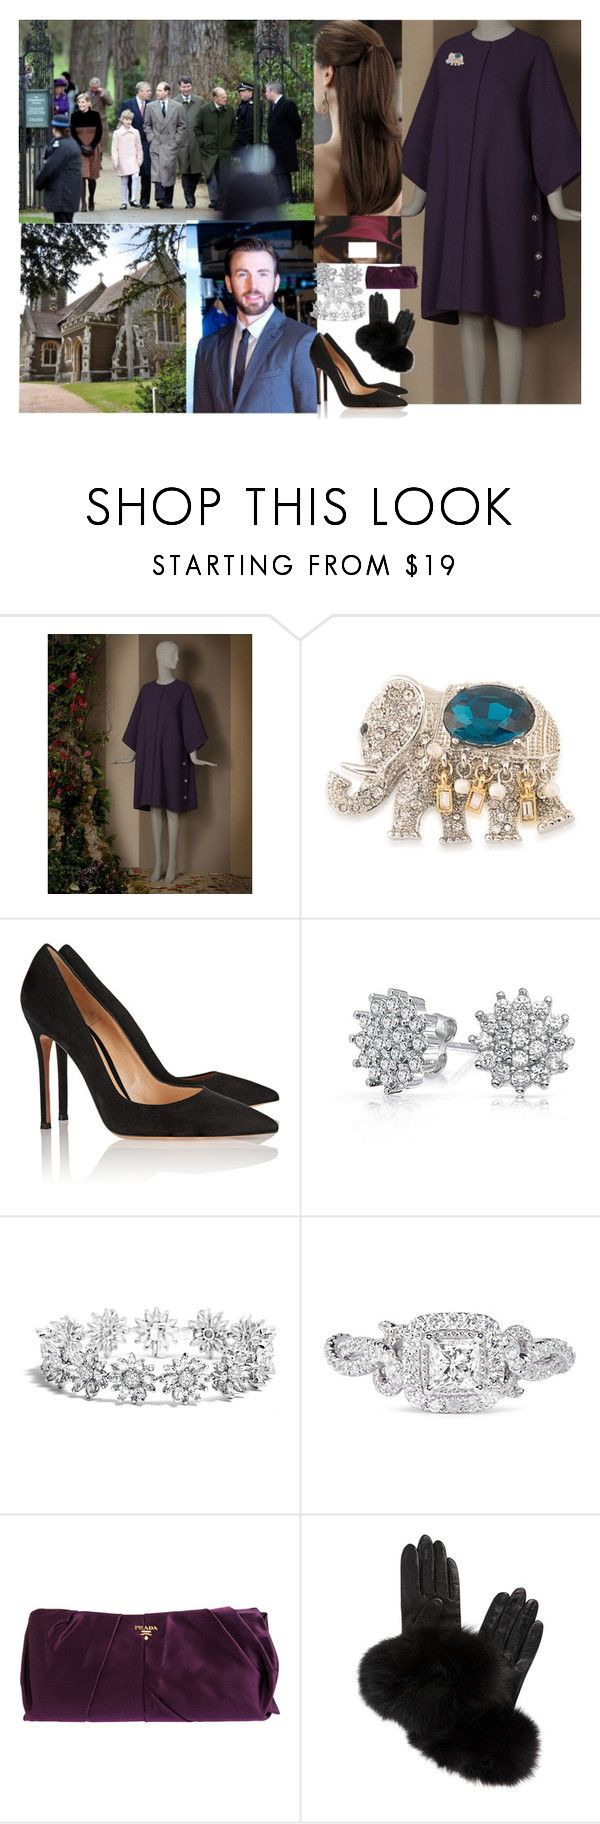 """""""Attending the Christmas Day service at St Mary Magdalene Church 2012"""" by pacqueline-ngoya ❤ liked on Polyvore featuring Dolce&Gabbana, Carolee, Gianvito Rossi, Bling Jewelry, Vera Wang, Prada and AGNELLE"""